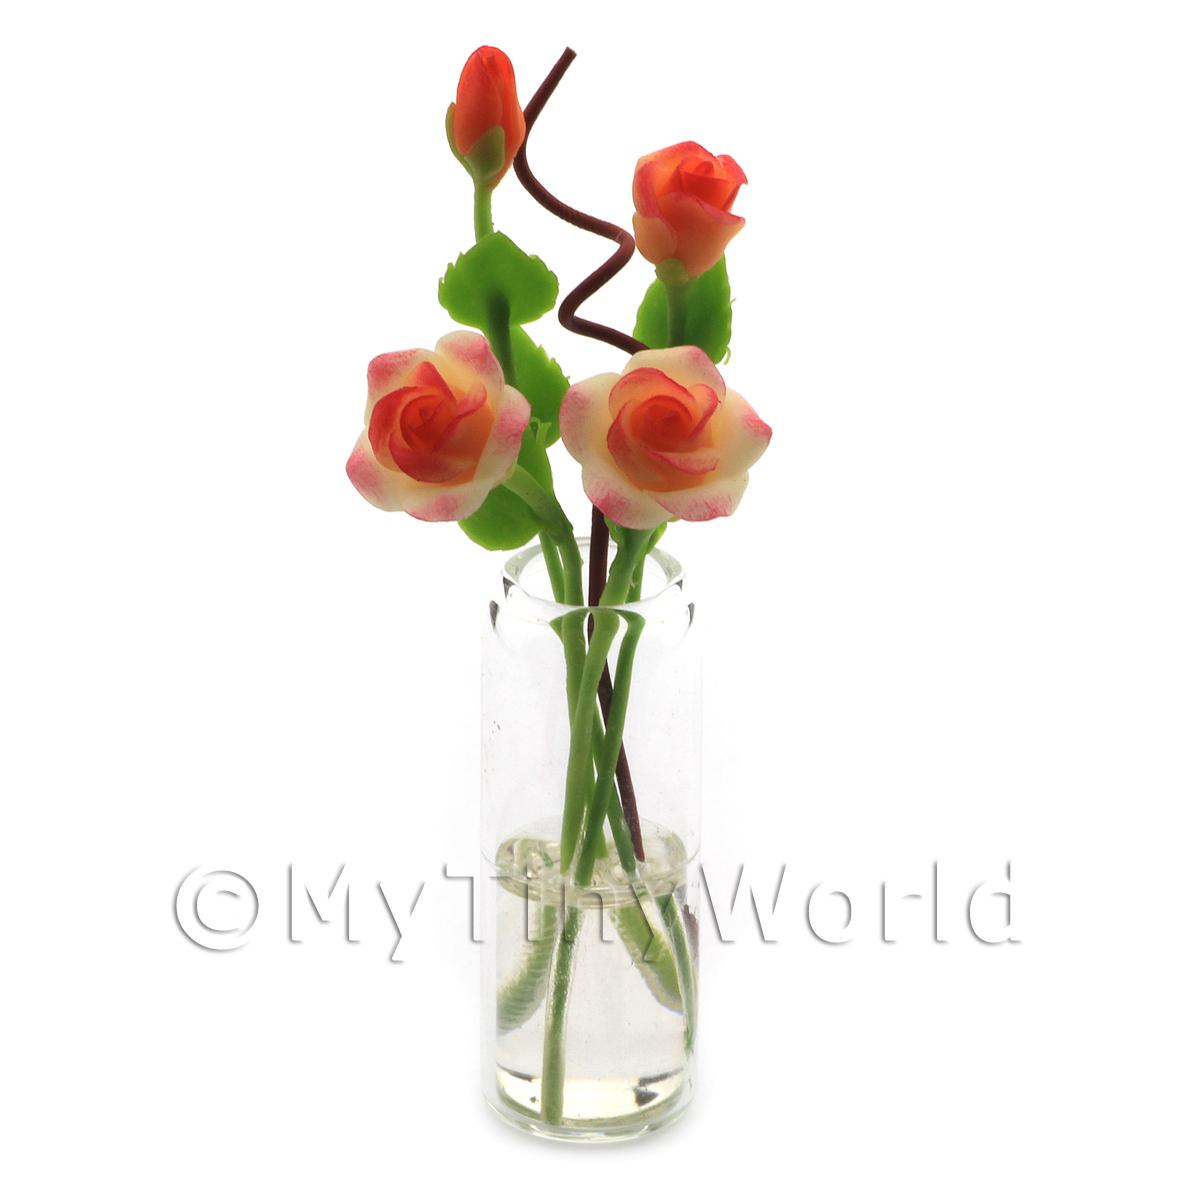 4 Miniature Long Stemmed Orange Roses in a Glass Vase